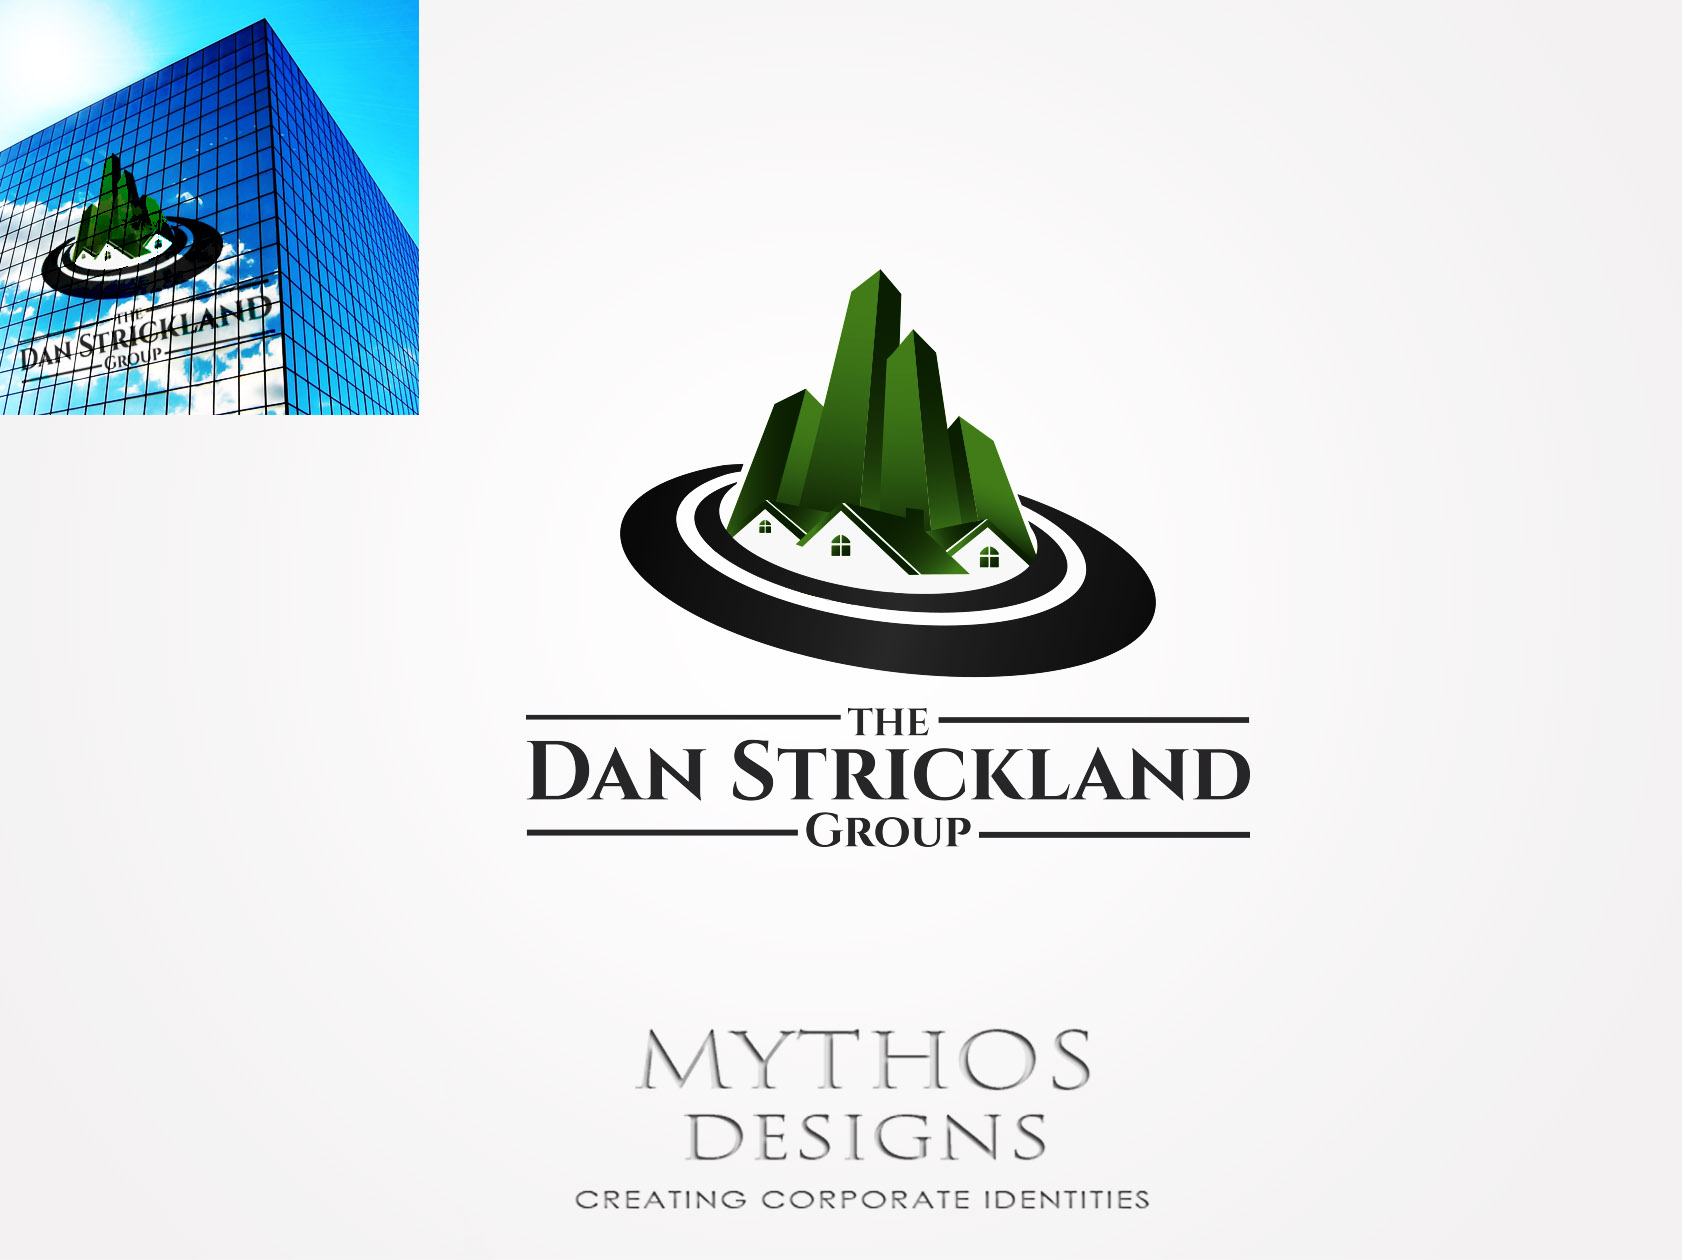 Logo Design by Mythos Designs - Entry No. 143 in the Logo Design Contest Creative Logo Design for The Dan Strickland Group.